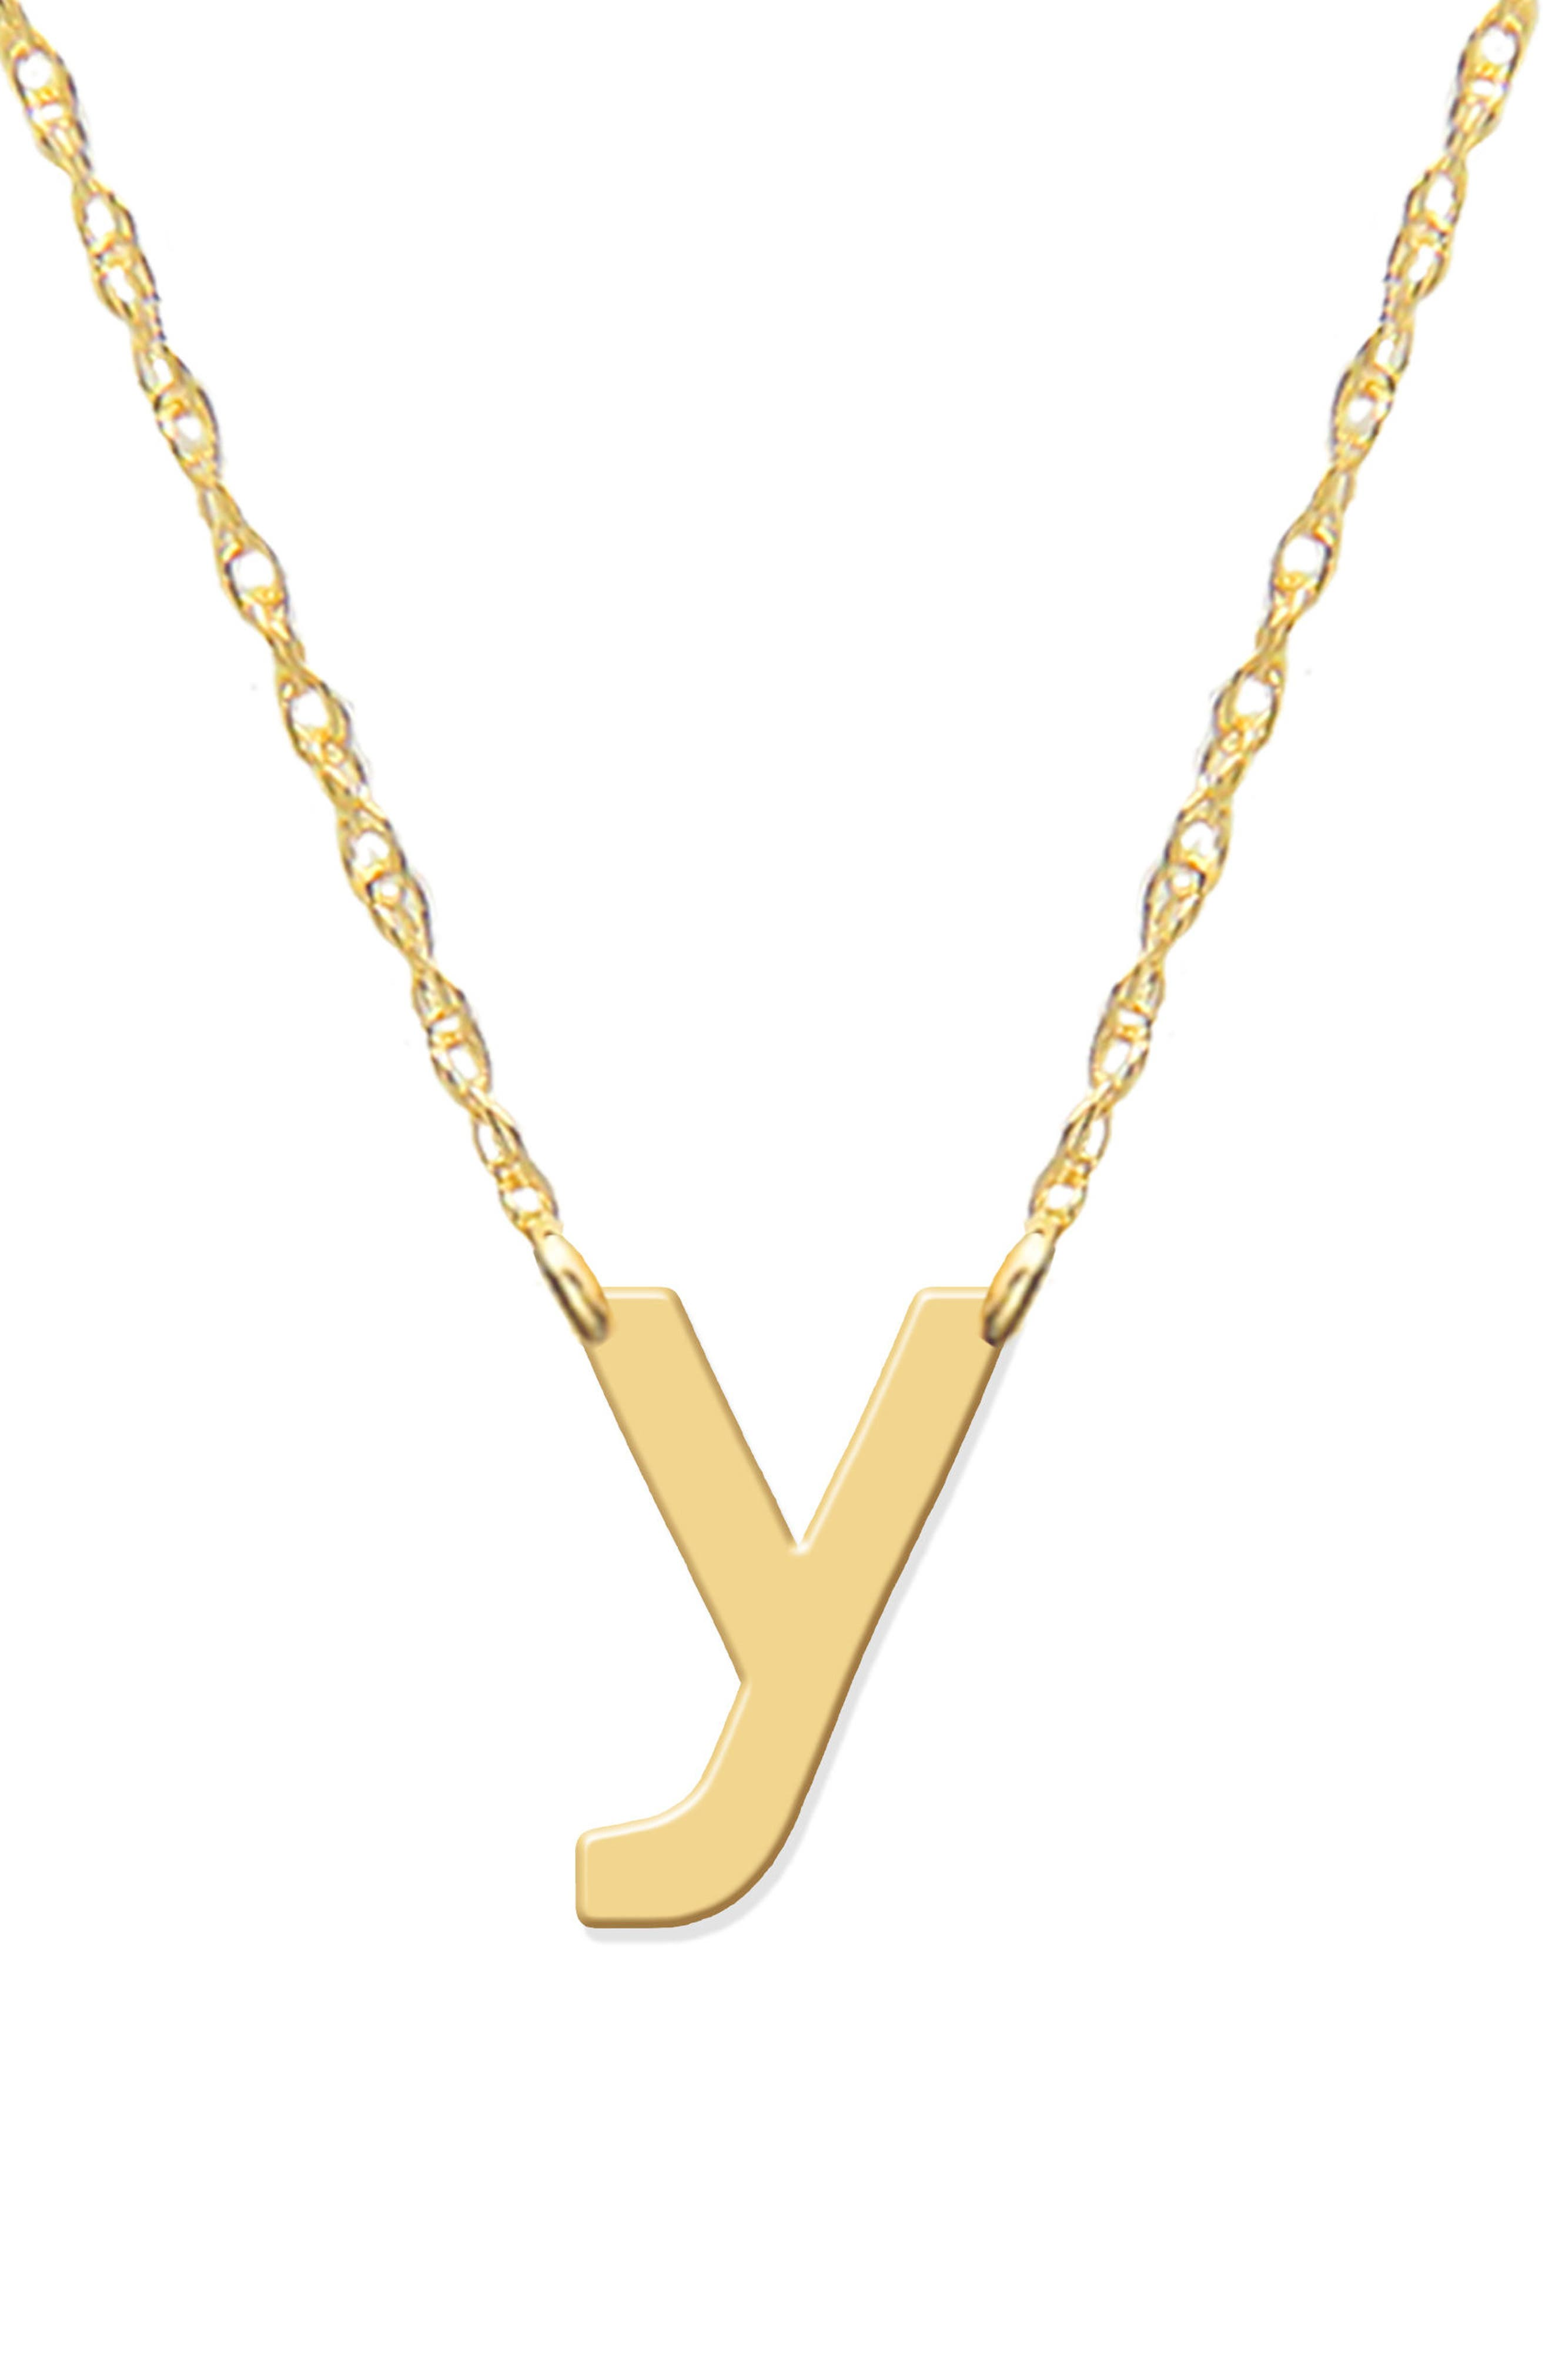 Lowercase Initial Pendant Necklace,                         Main,                         color, Gold- Y